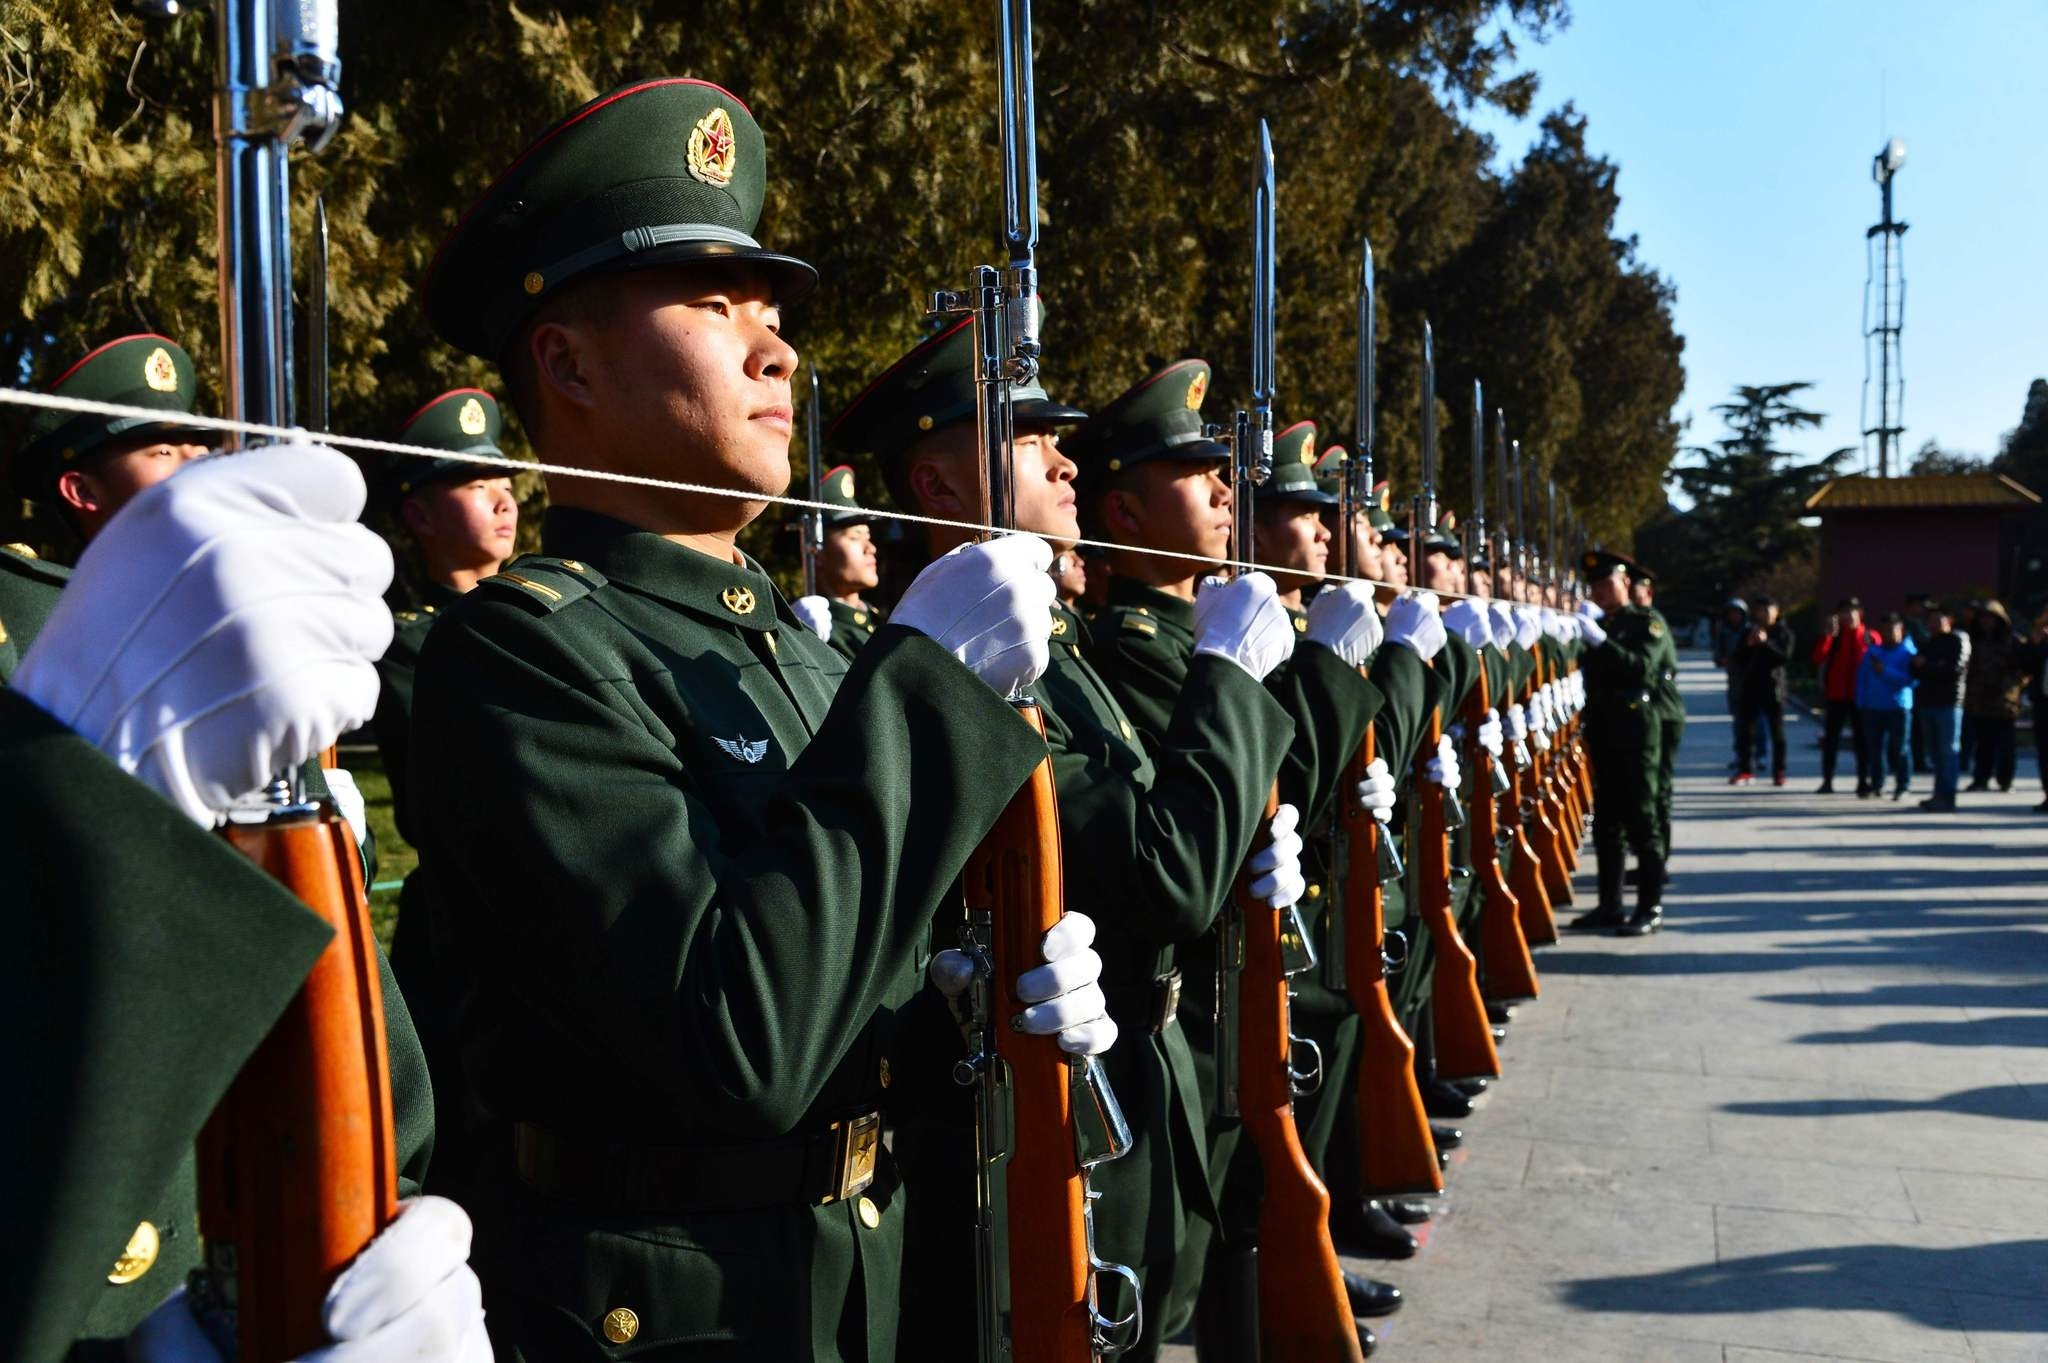 This photo taken on Jan. 1, 2018 shows members of the Chinese People's Liberation Army honour guard training at the Working People's Cultural Palace after the flag raising ceremony in Beijing. (AFP Photo)